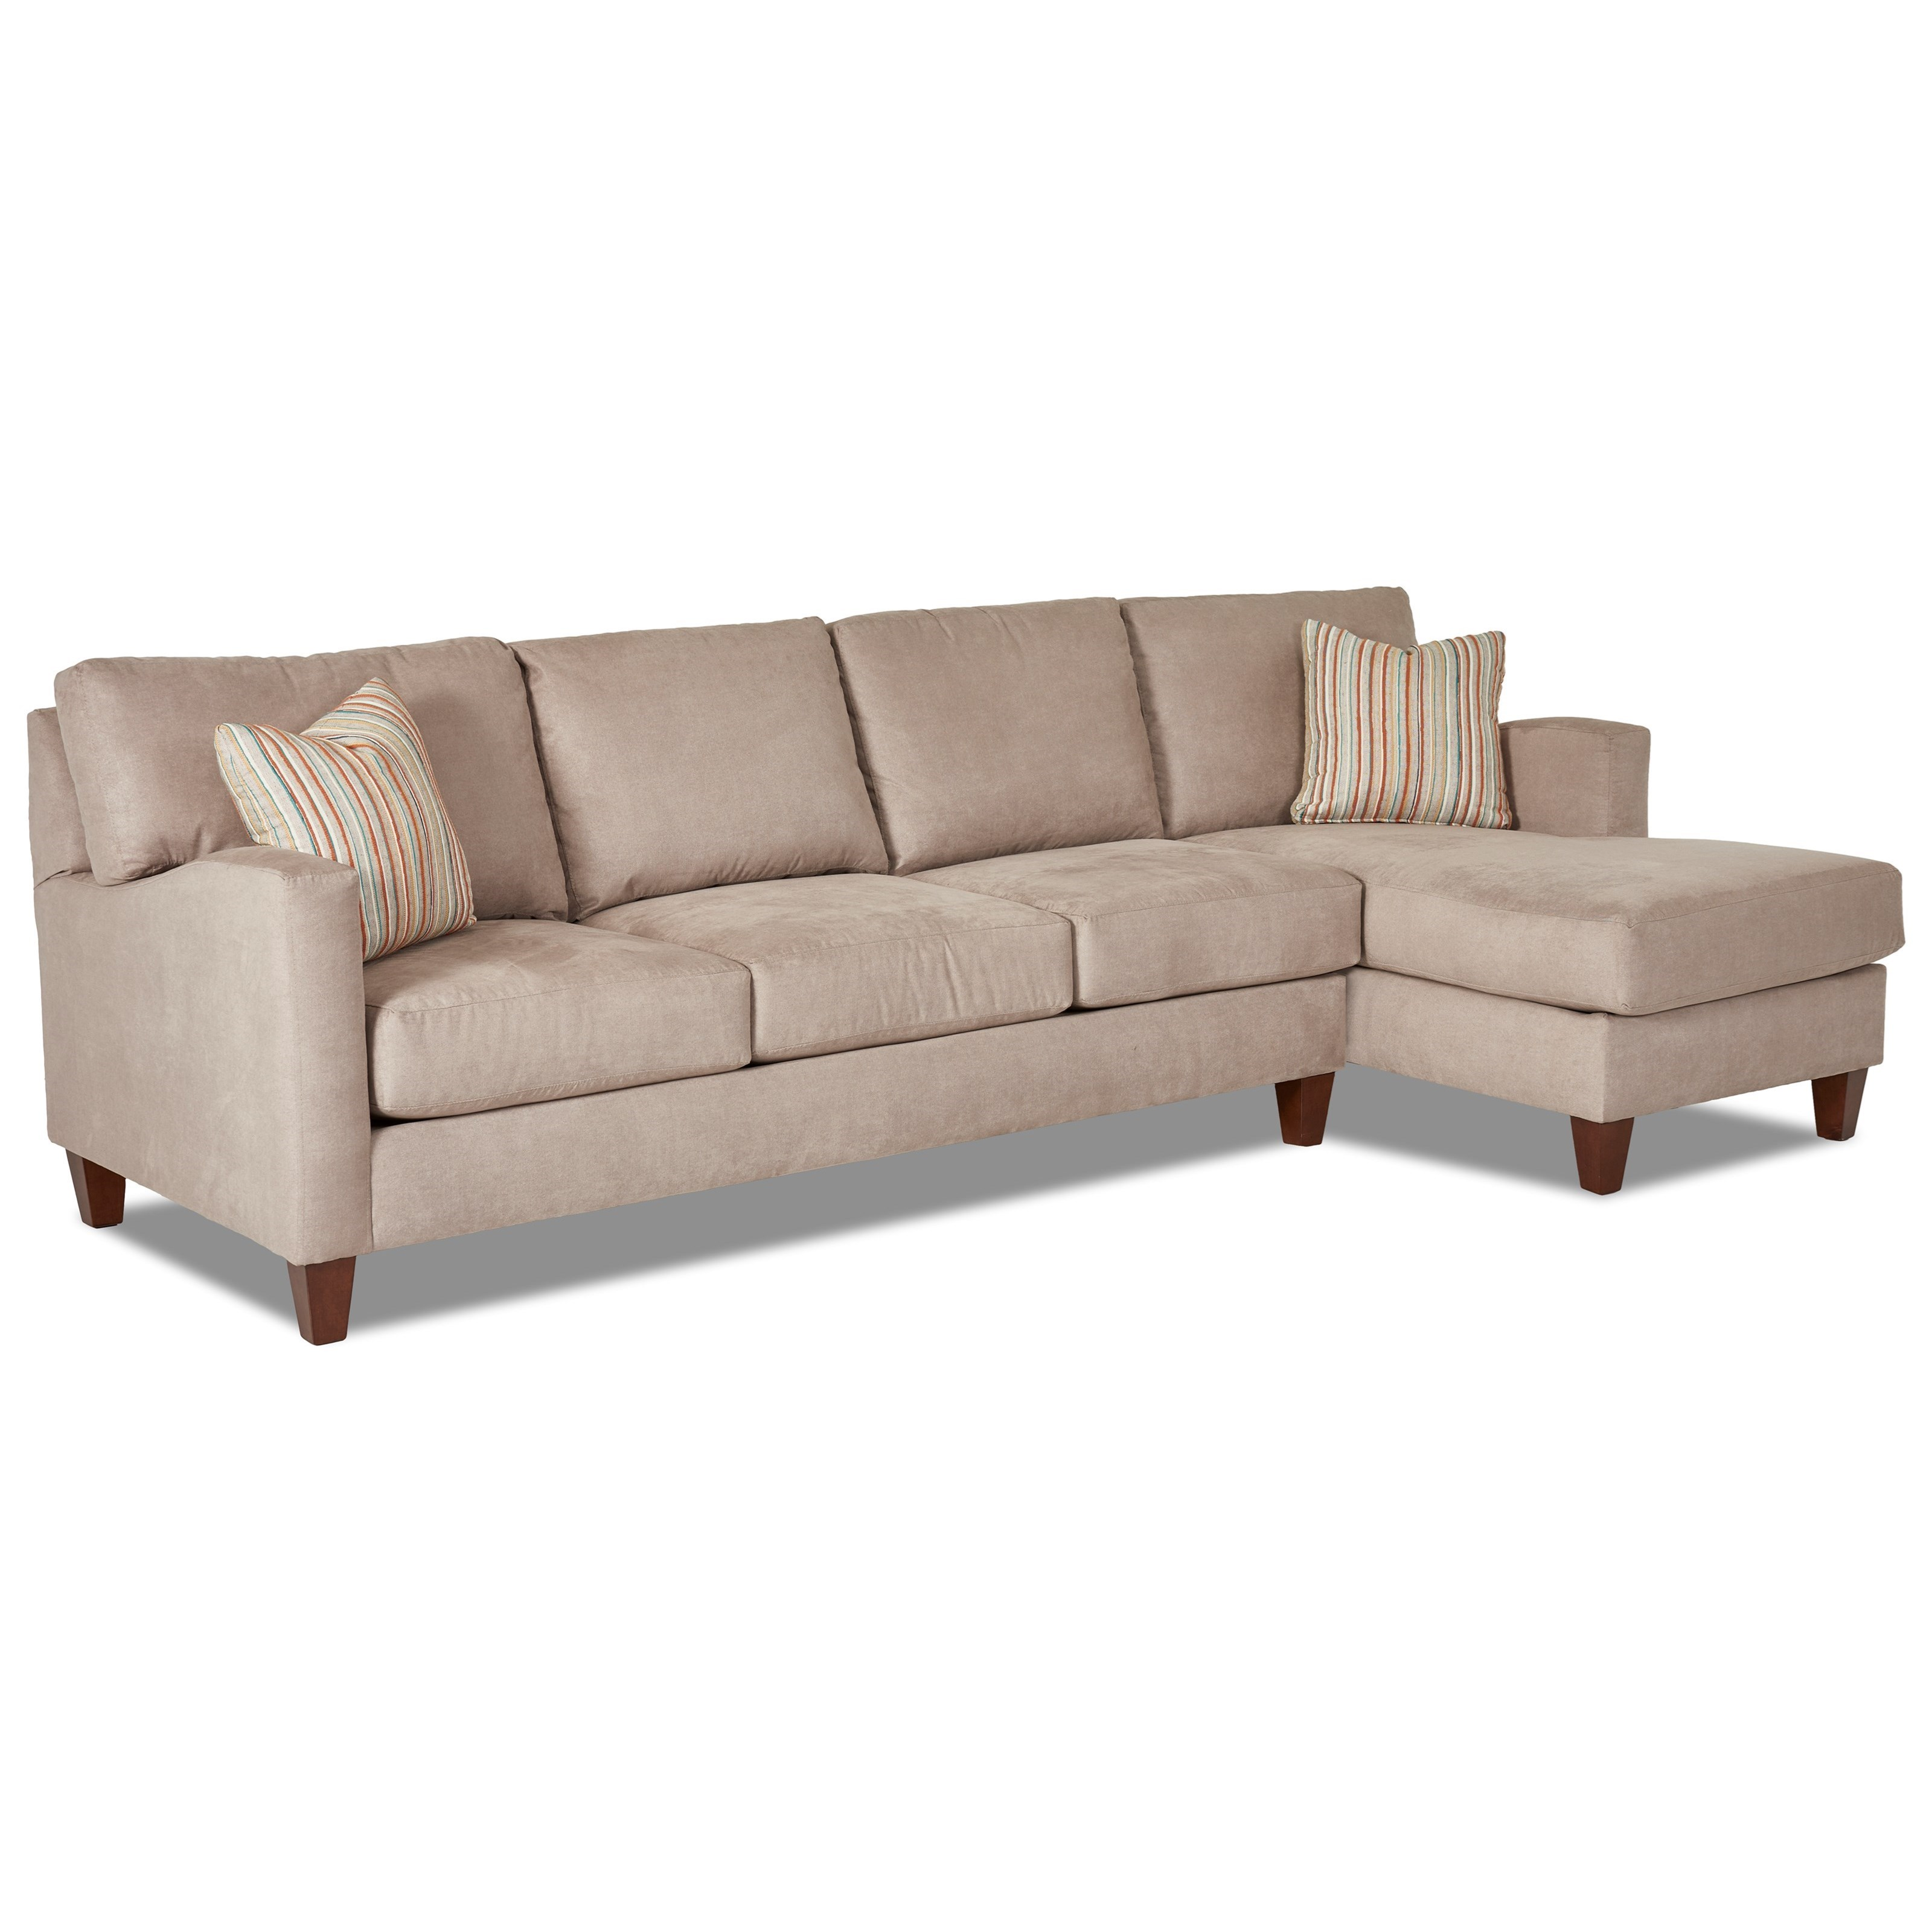 Klaussner Colleen 2 Pc Stationary Sectional w/ RAF Chaise - Item Number: K19300L S+K19300R CHASE